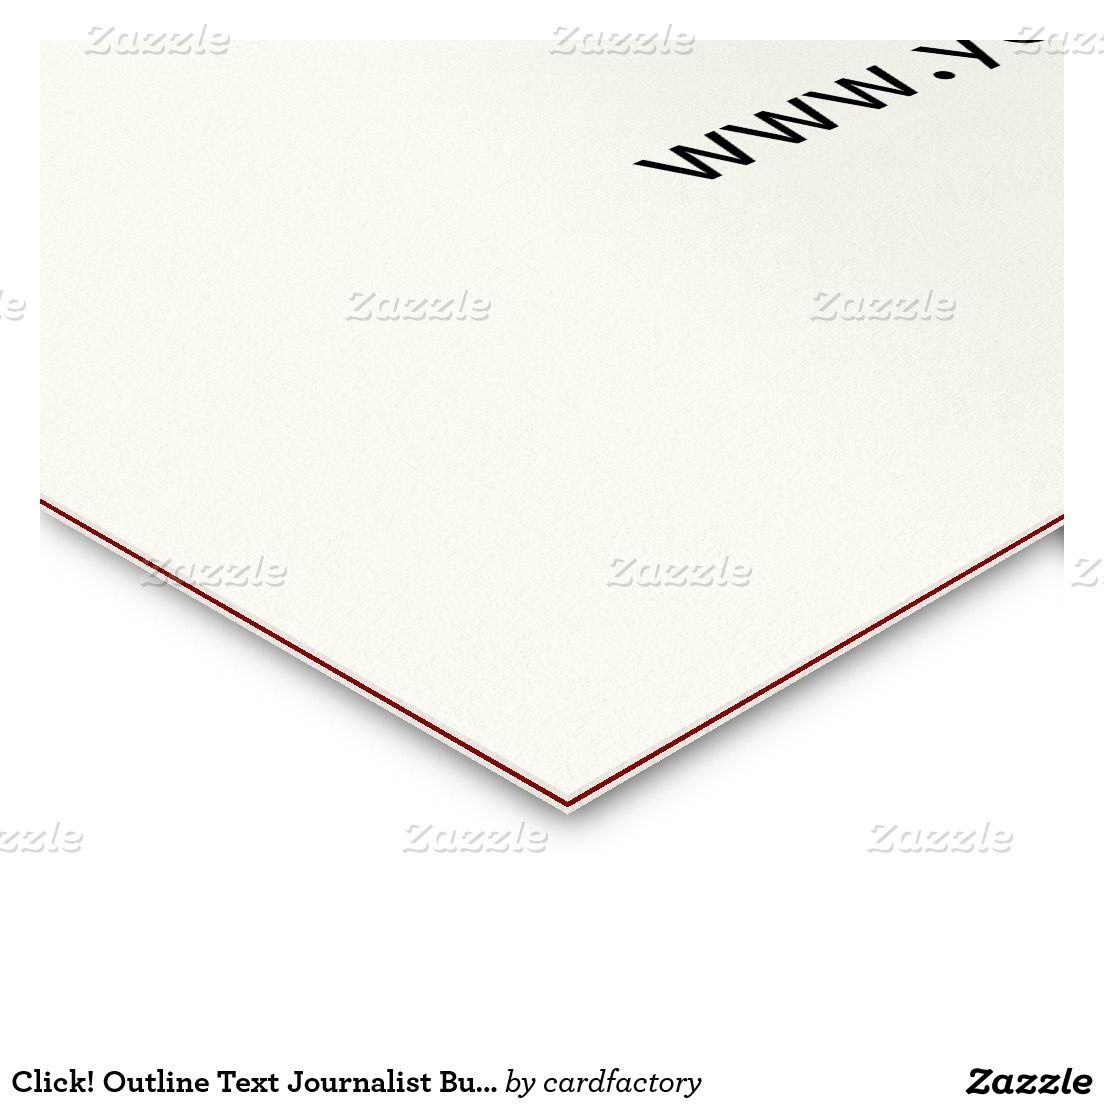 Click outline text journalist business card outlines business outline text journalist business card colourmoves